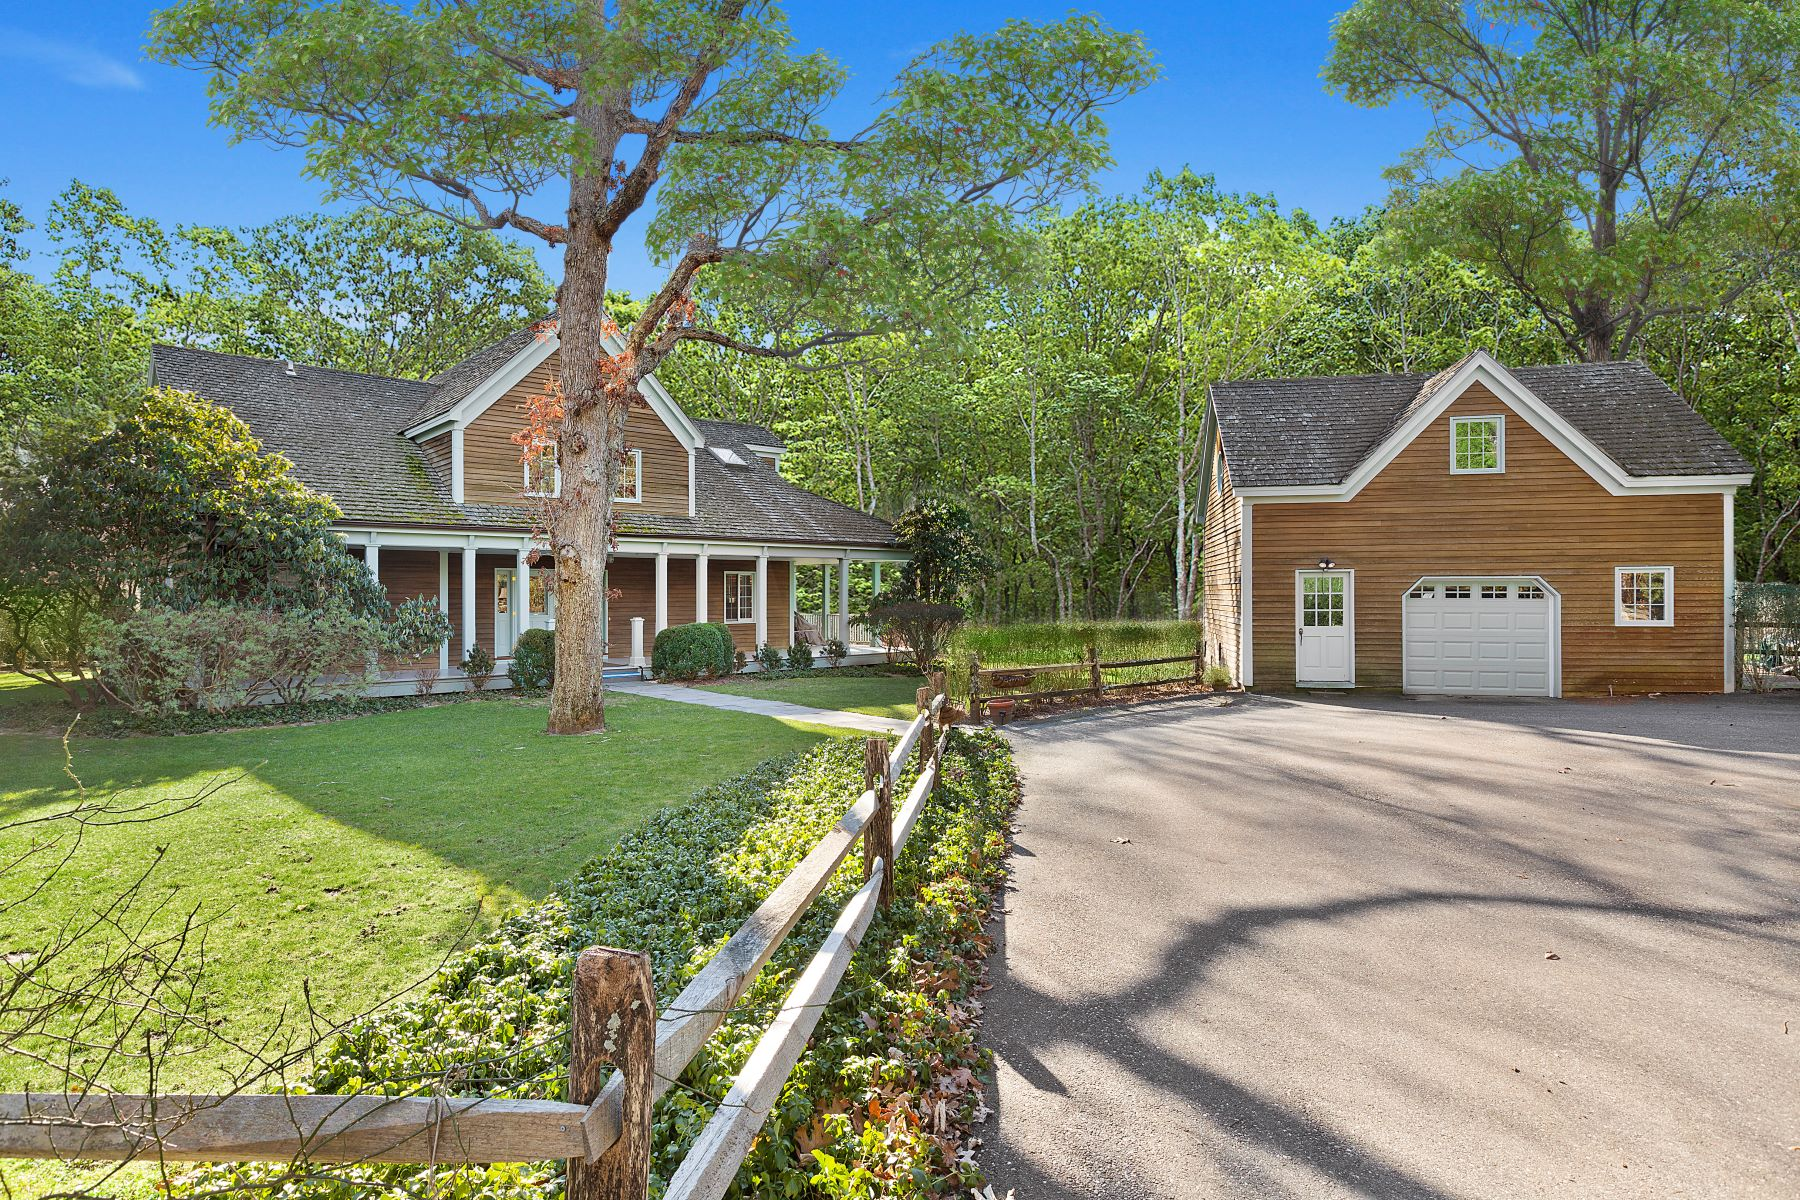 Single Family Homes for Sale at Amagansett Bell Estate Perfection 12 Dennistoun Drive Amagansett, New York 11930 United States